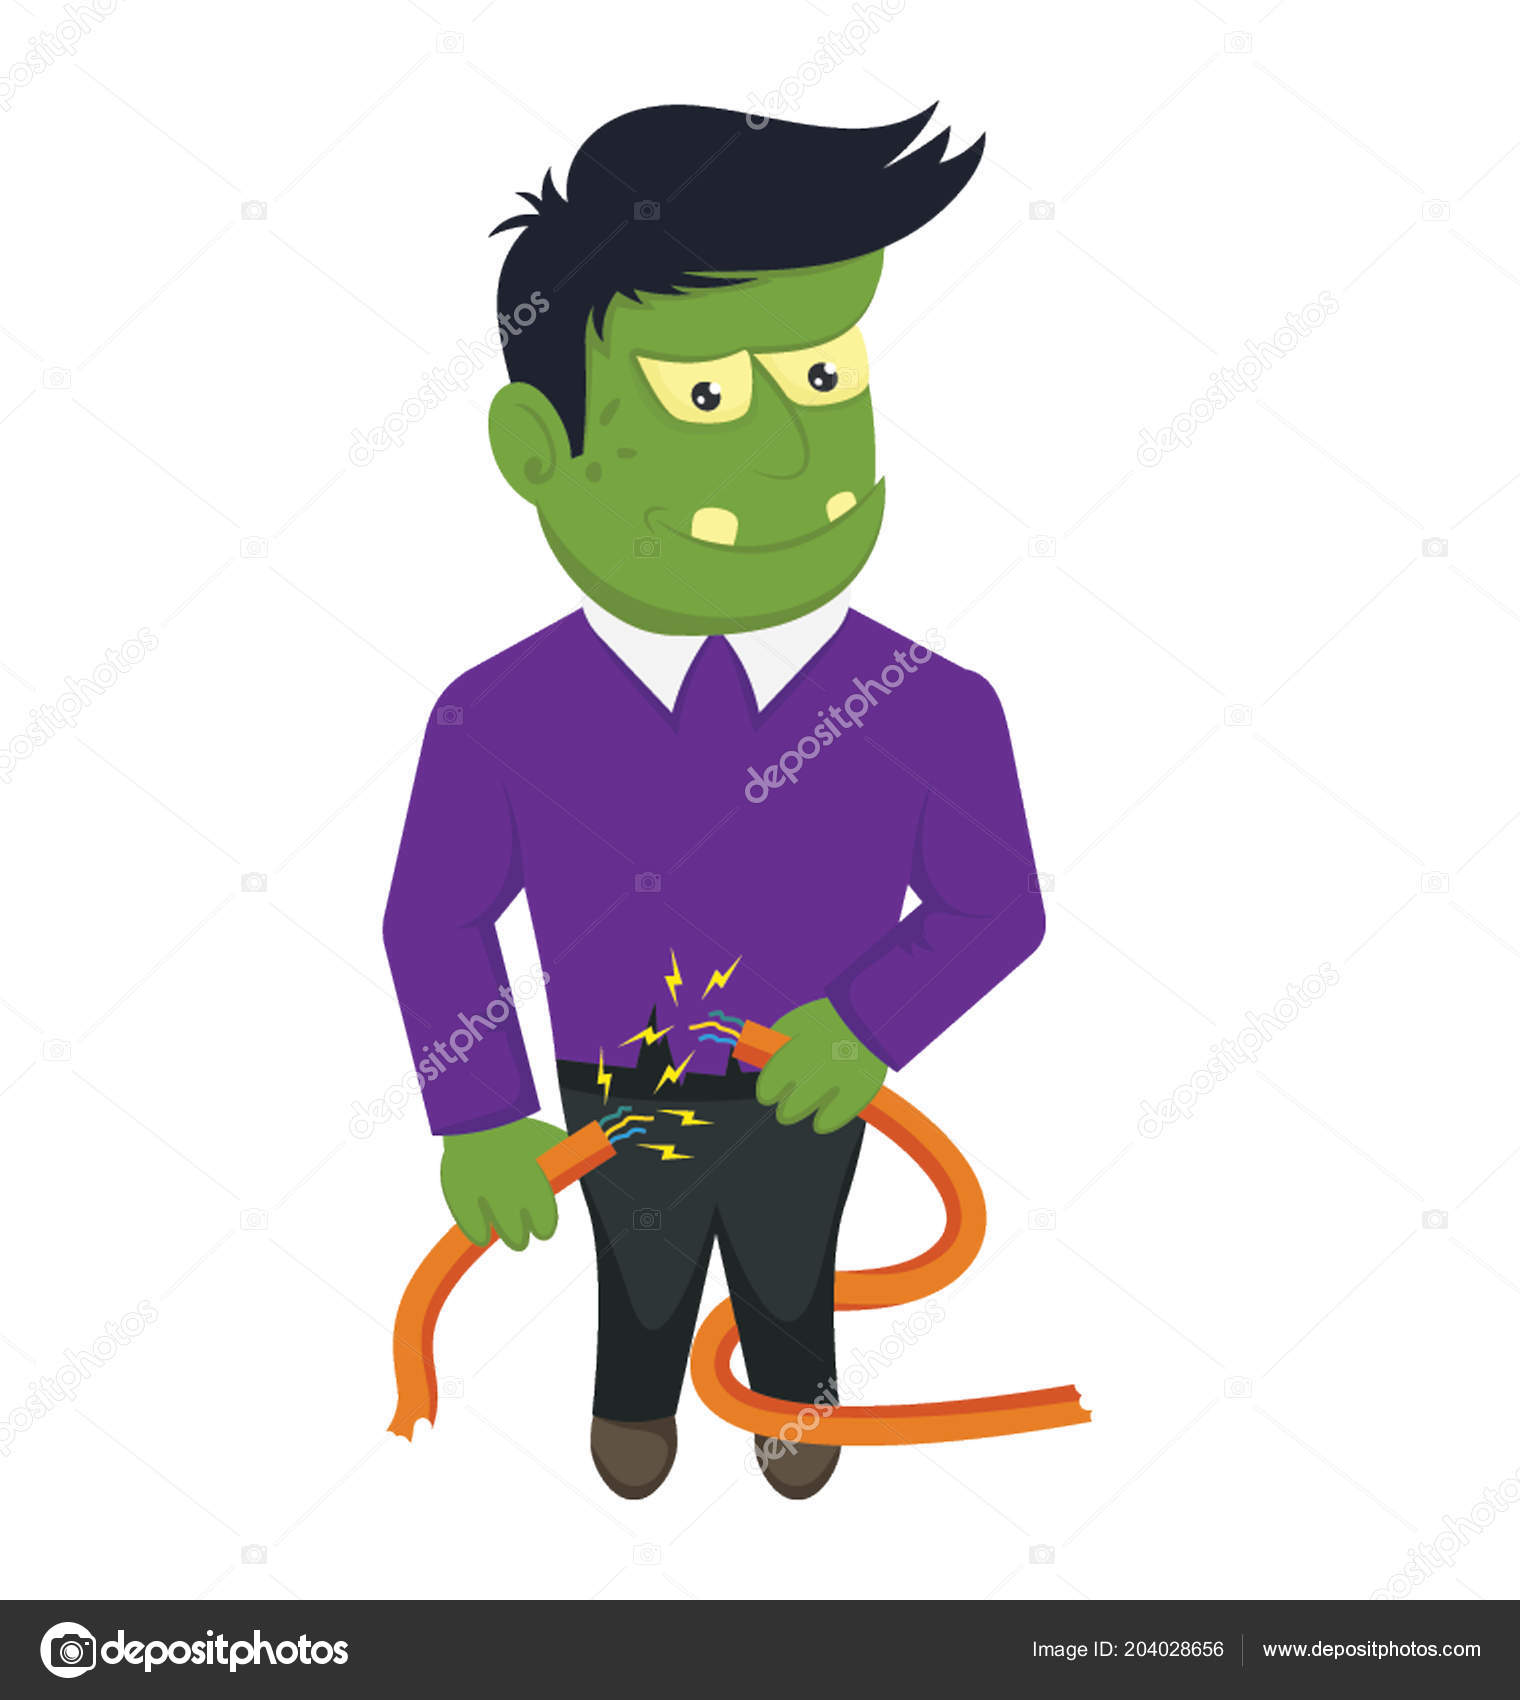 Pics Lurch Famous Giant Character Lurch Addams Family Cartoon Bewitching Icon Frankenstein Stock Vector C Vectorsmarket 204028656